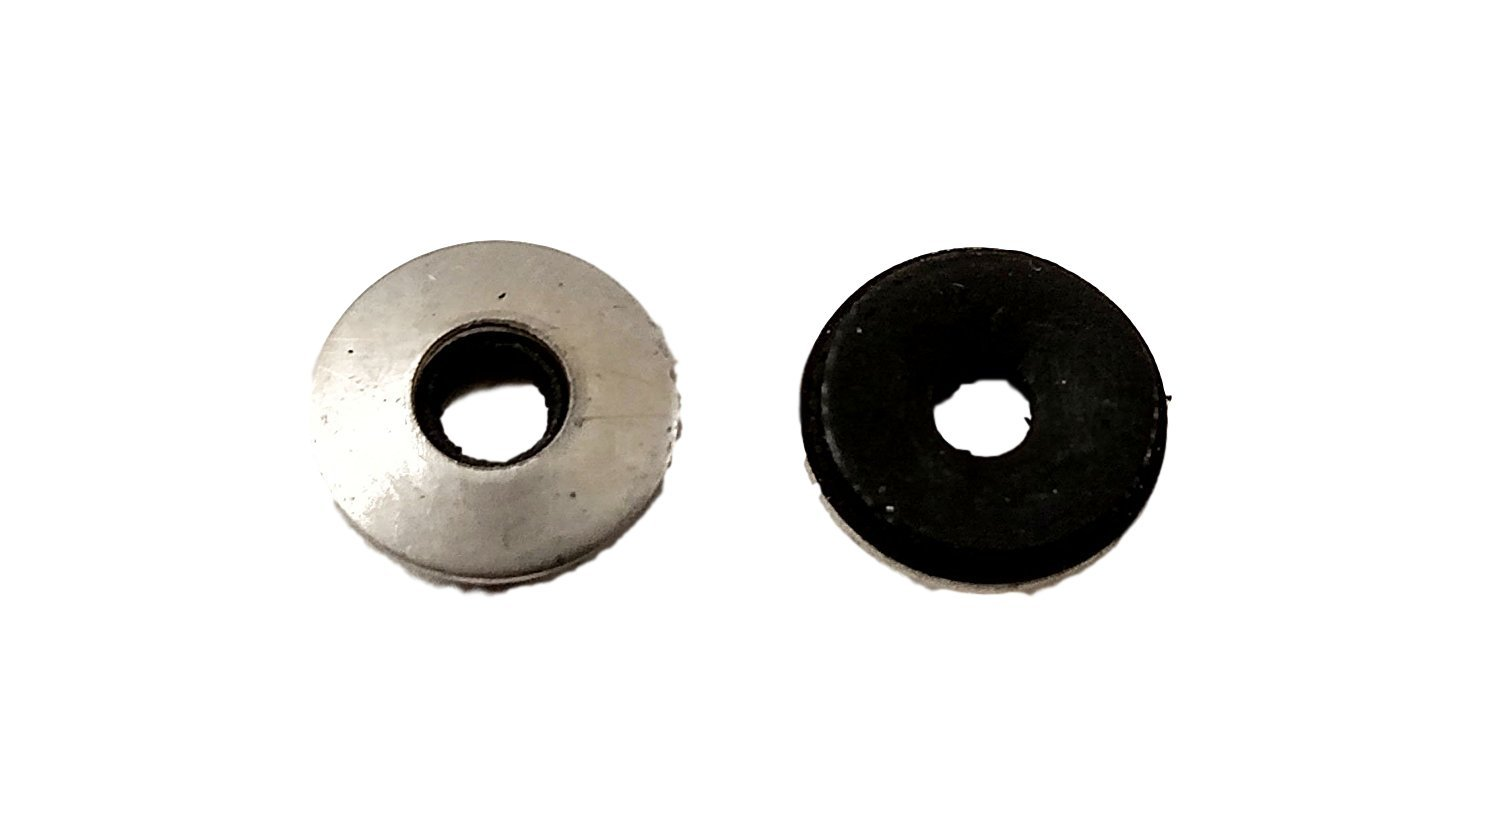 #8 Neoprene EPDM Bonded Sealing Washers Stainless Steel 18-8, Neo Bond, 100 Pieces (#8 NEO BOND WASHER)